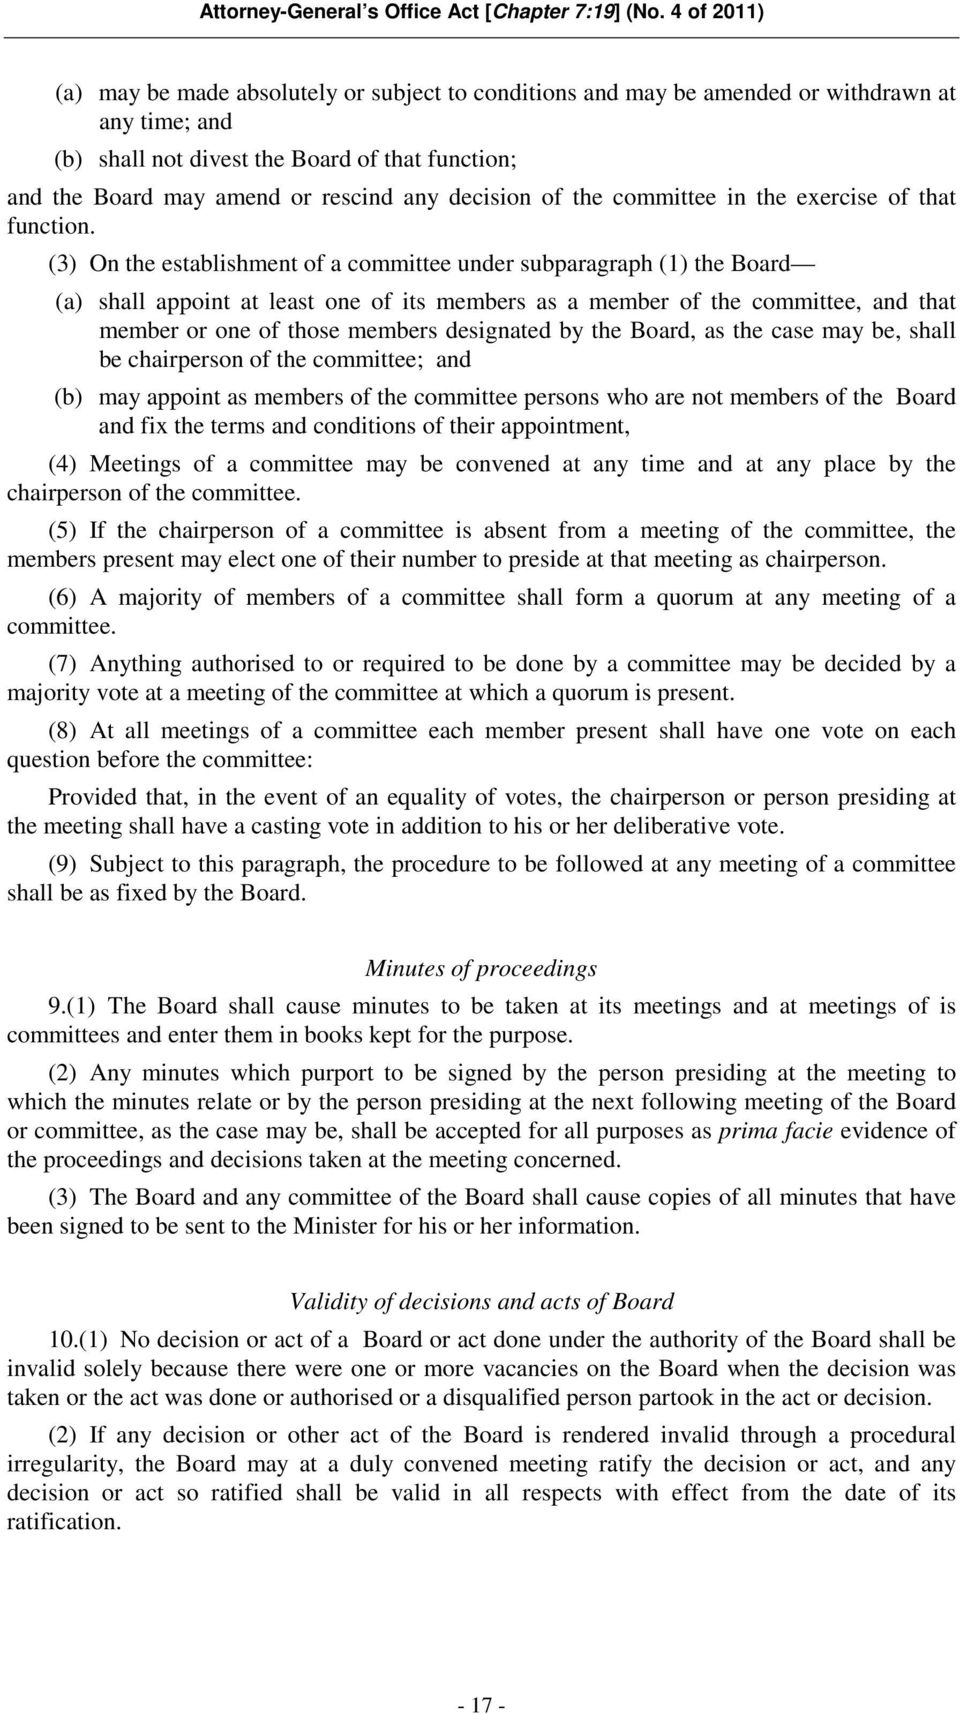 (3) On the establishment of a committee under subparagraph (1) the Board (a) shall appoint at least one of its members as a member of the committee, and that member or one of those members designated